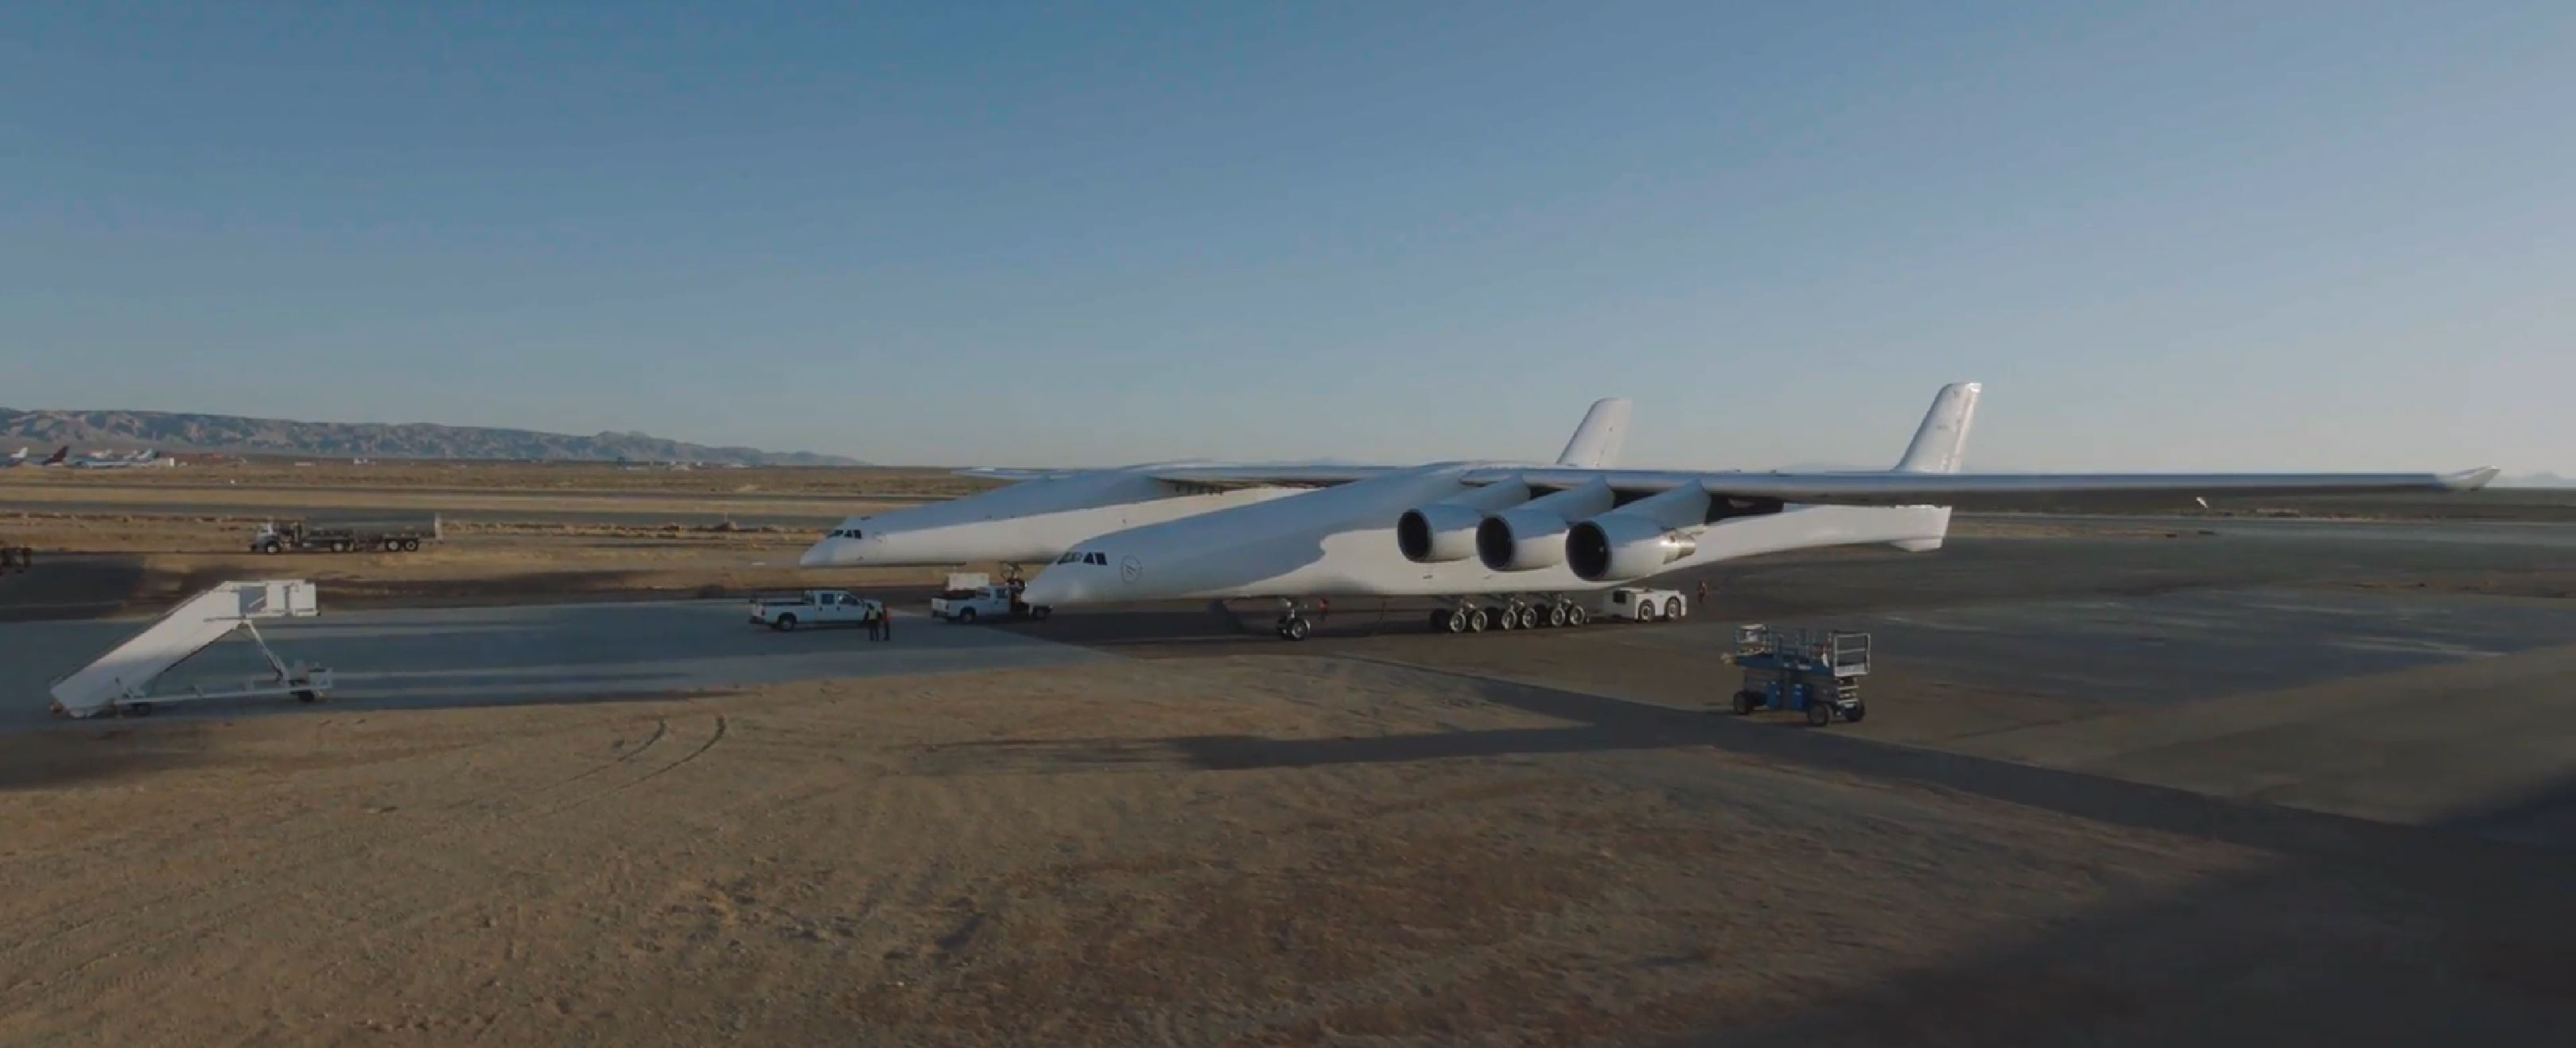 Stratolaunch Roc (Stratolaunch) 3